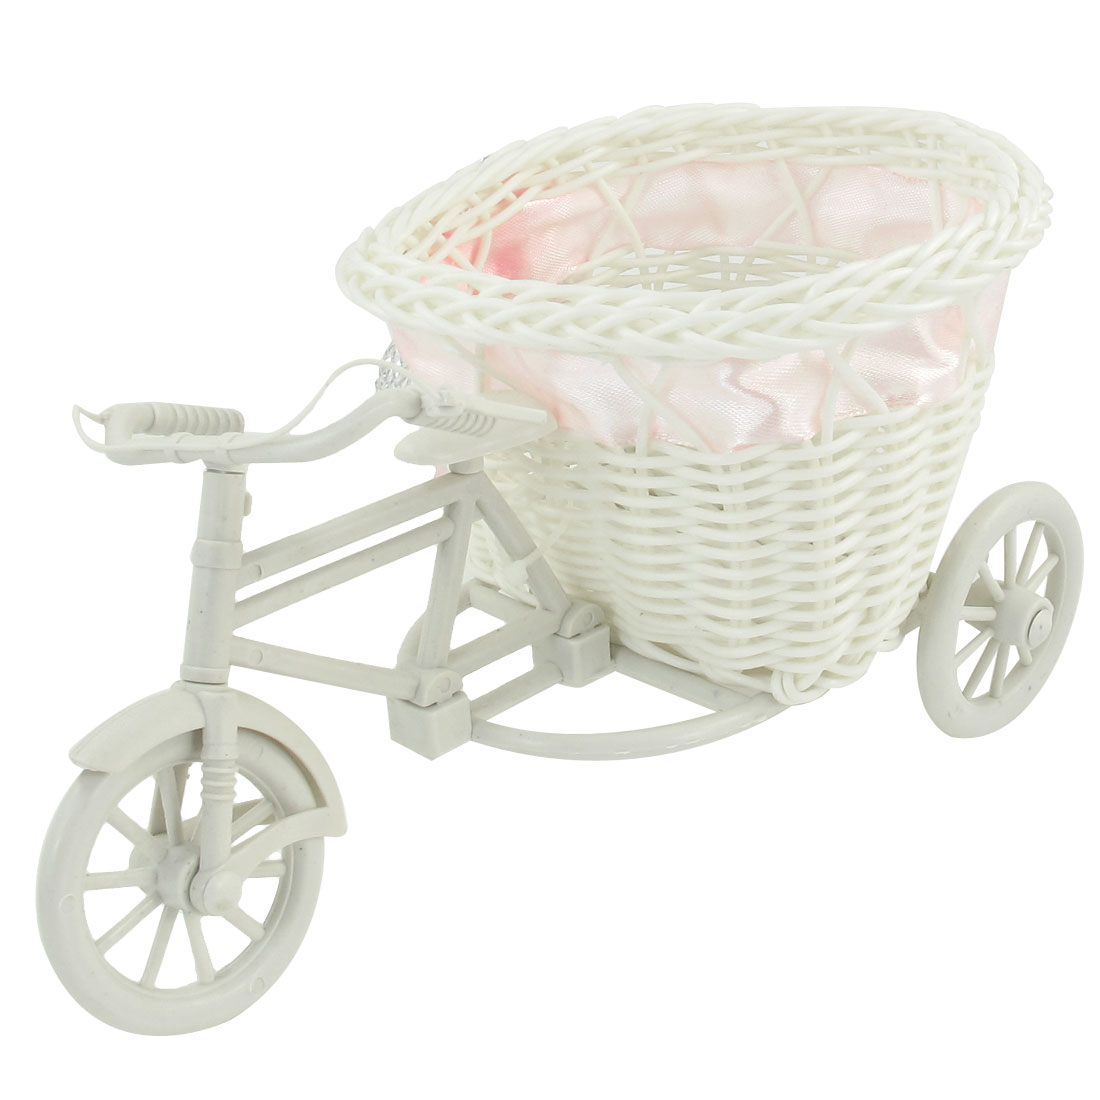 White Plastic Tricycle Design Pink Flower Decor Heart Shaped Weave Basket Storage Holder